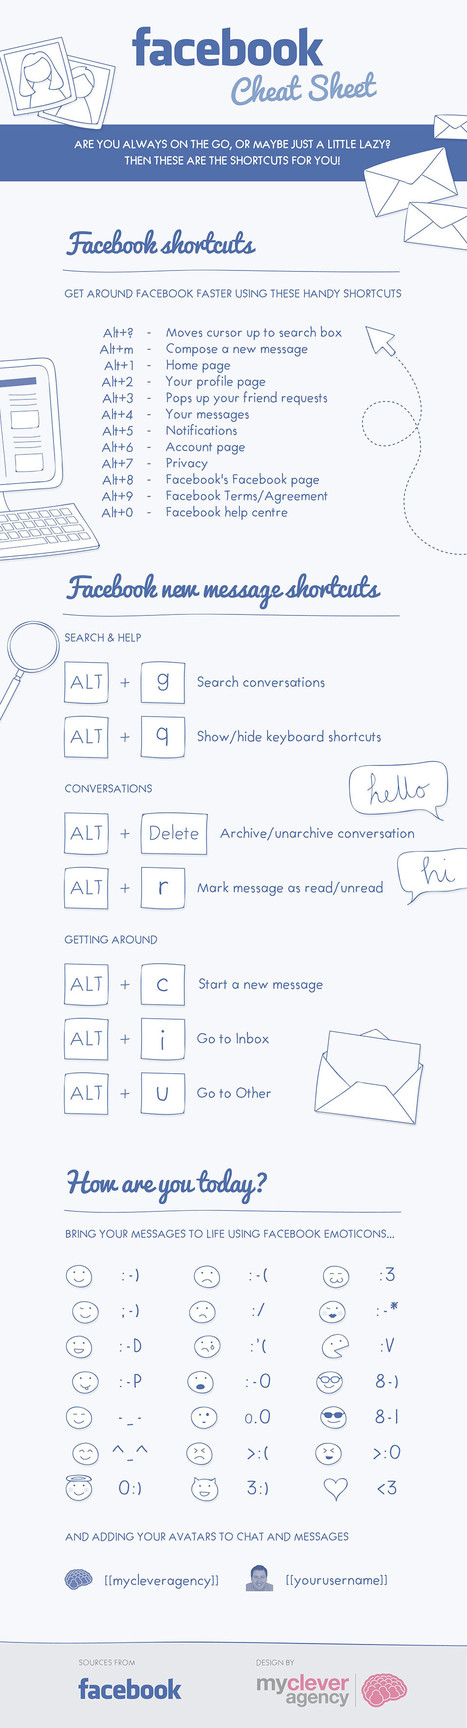 Facebook Cheat Sheet [INFOGRAPHIC] | Online Community Manager | Scoop.it